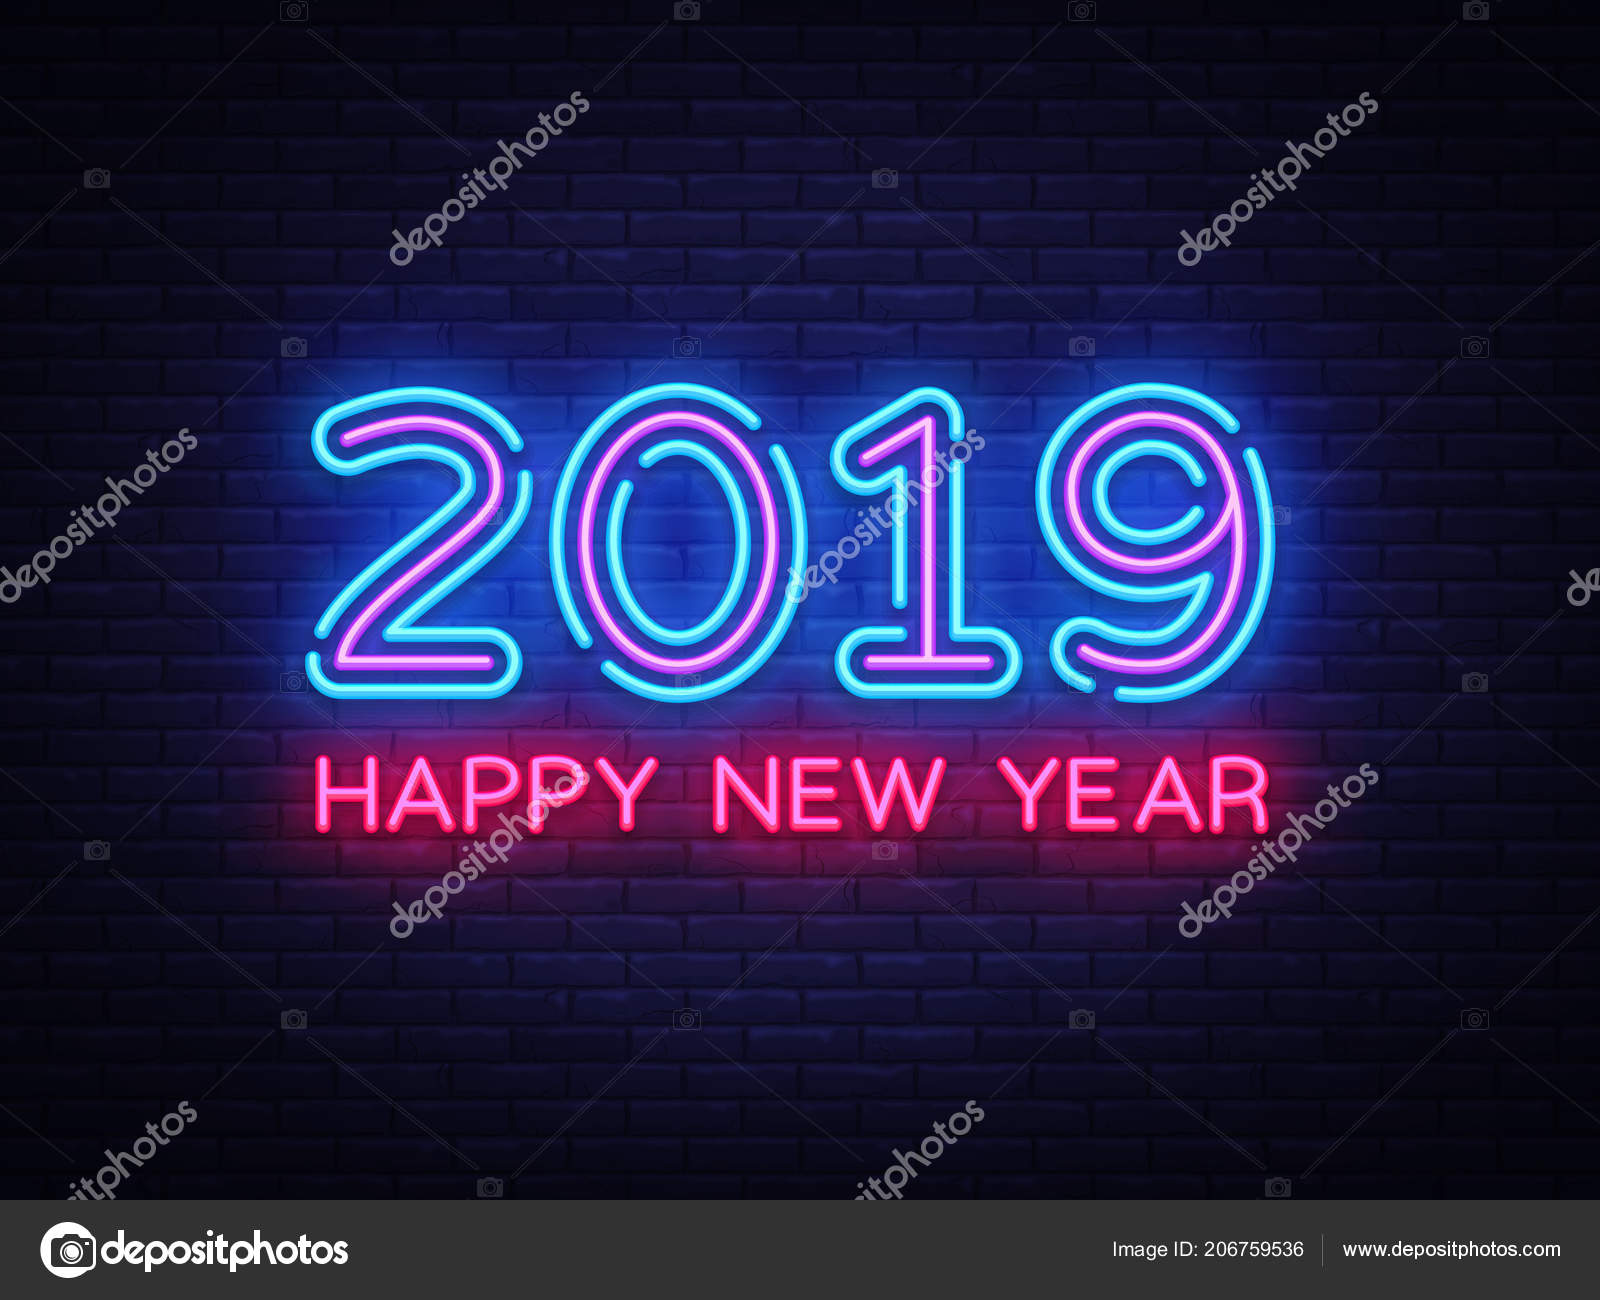 2019 Happy New Year Neon Text 2019 New Year Design Template For